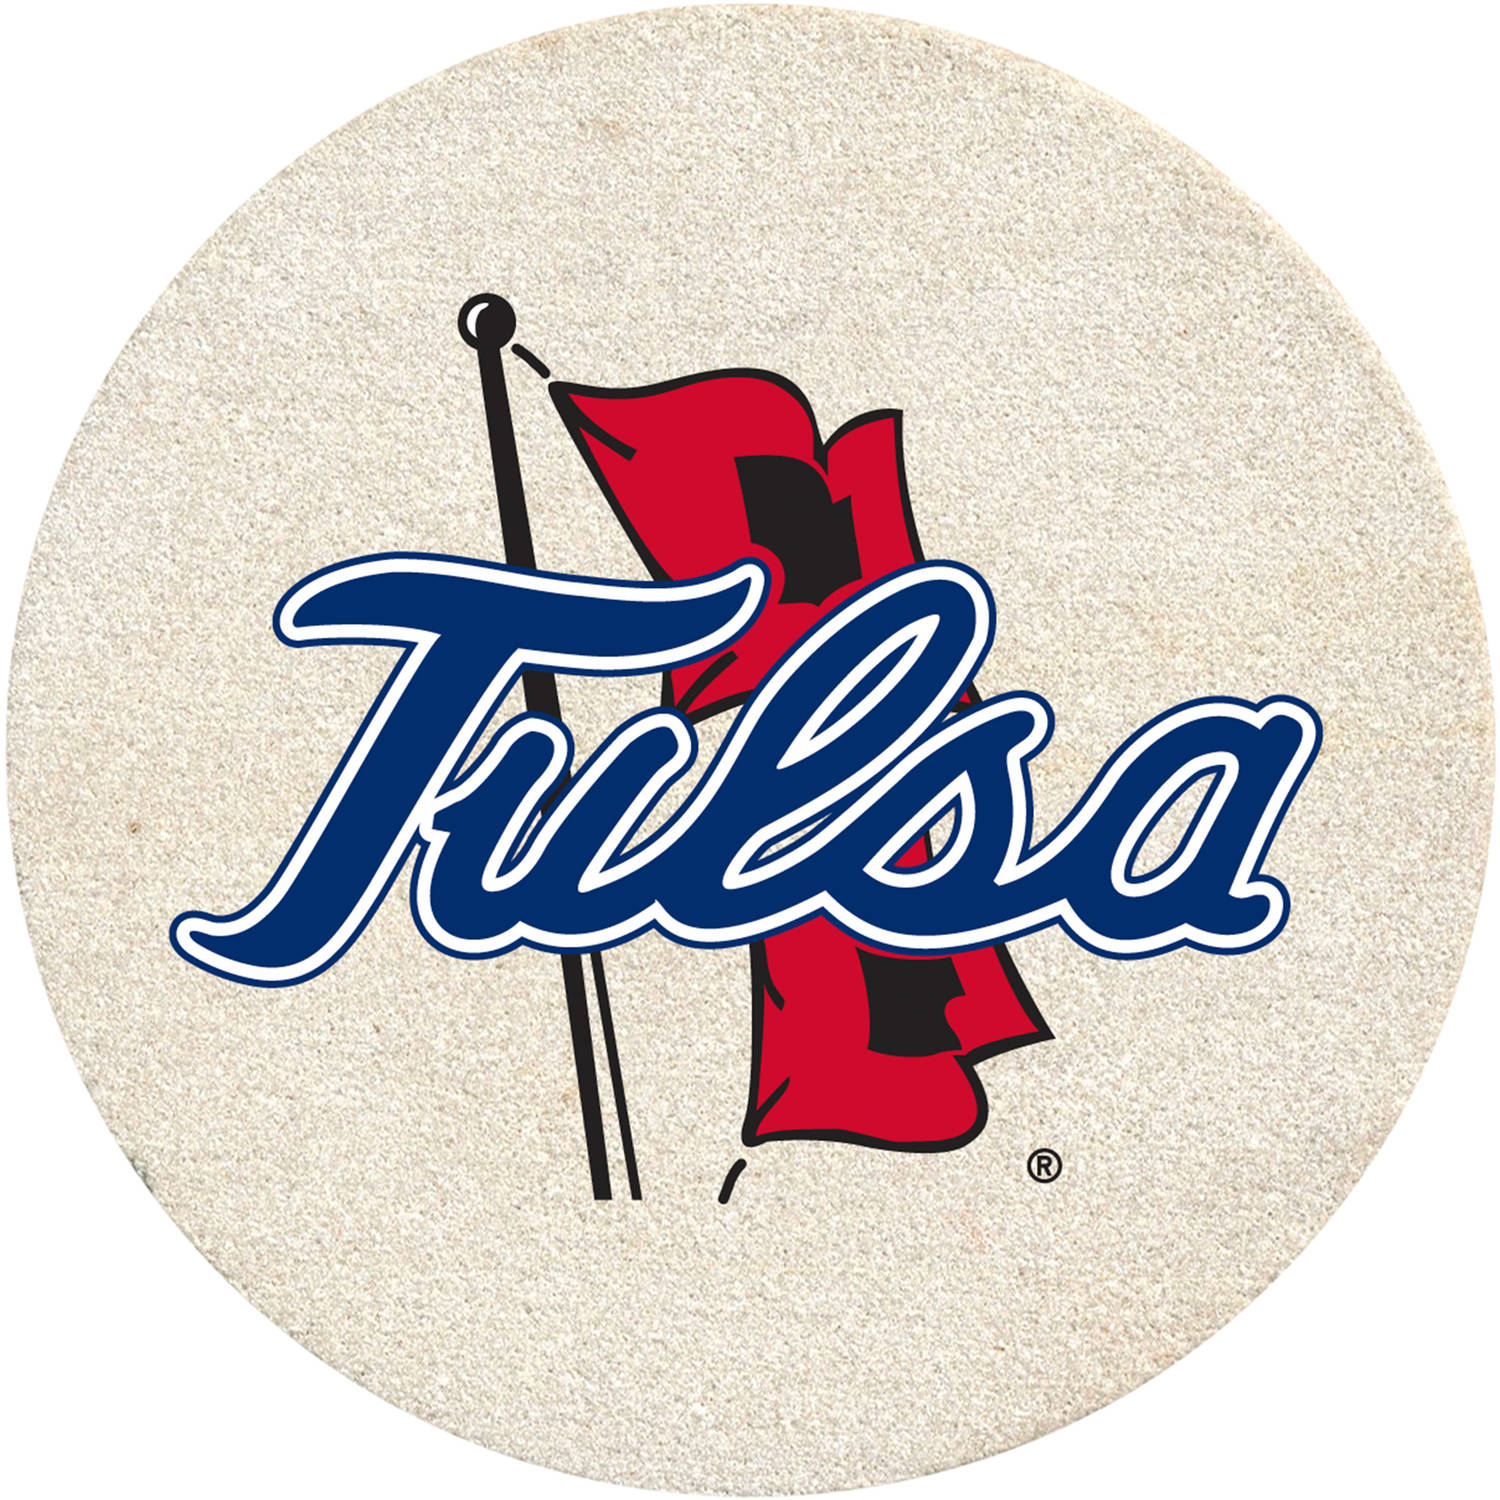 Thirstystone Drink Coaster Set, University of Tulsa